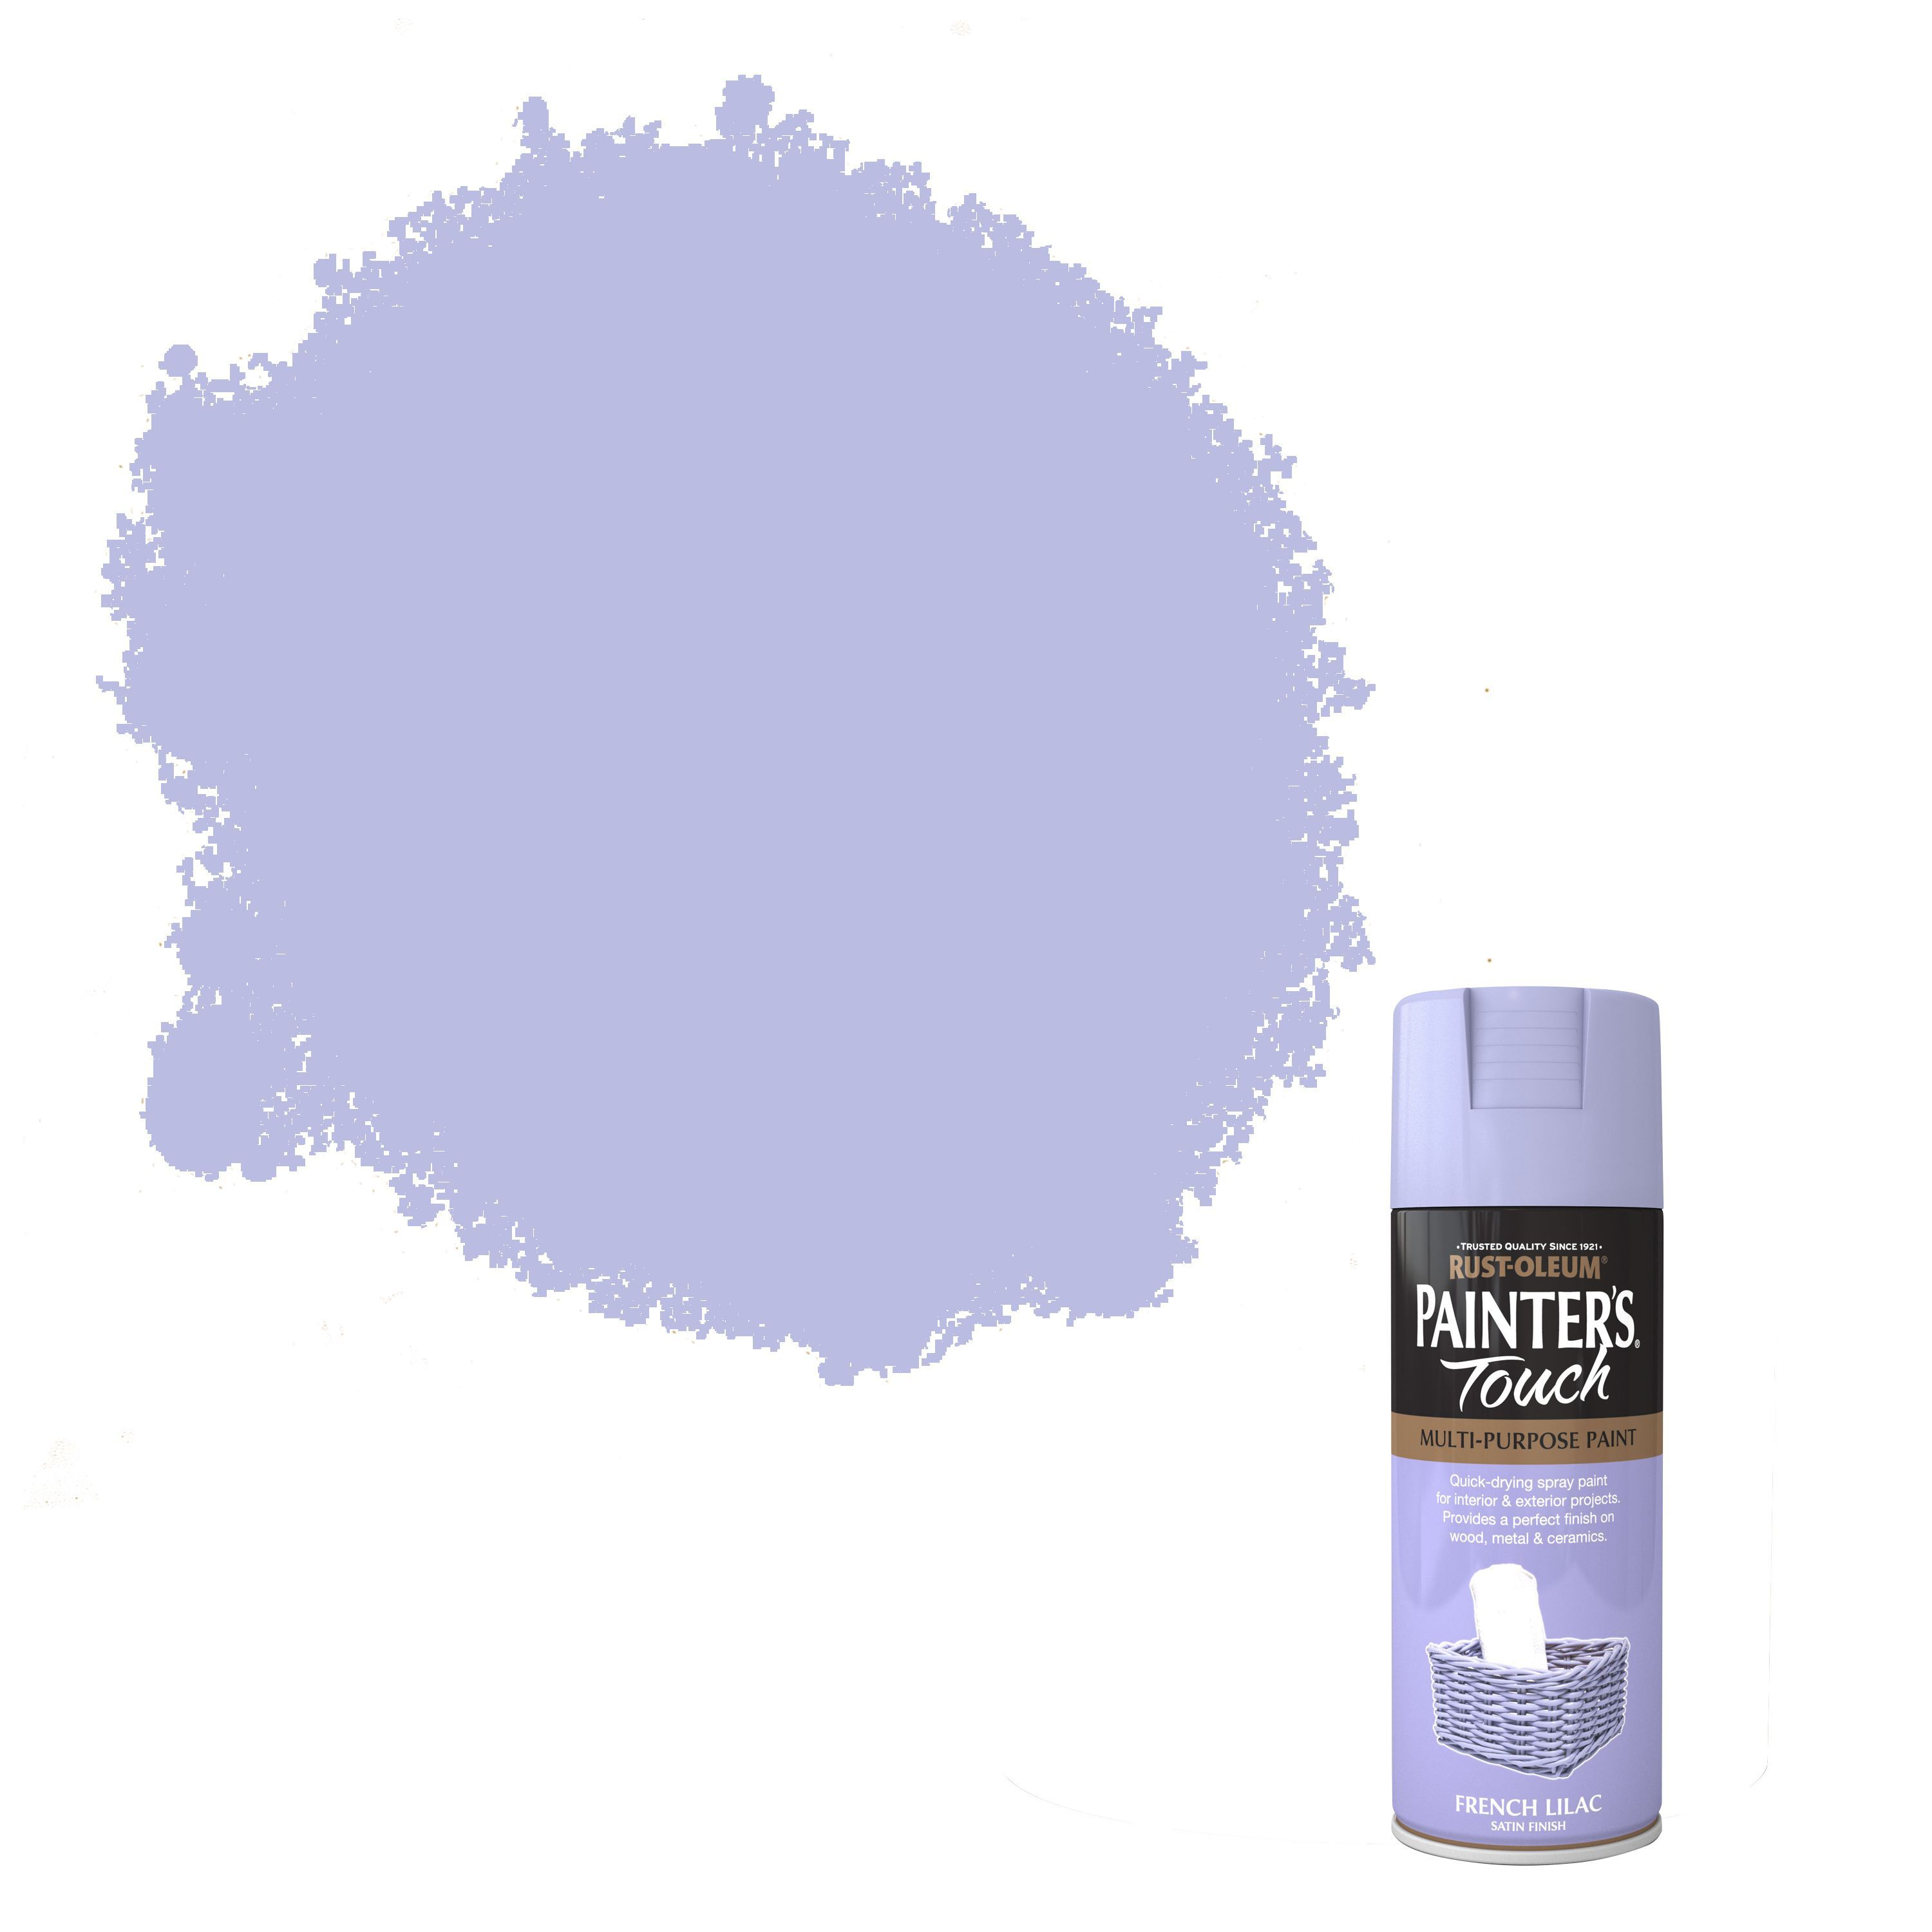 Rust Oleum Painters Touch French Lilac Satin Effect Satin Decorative Spray